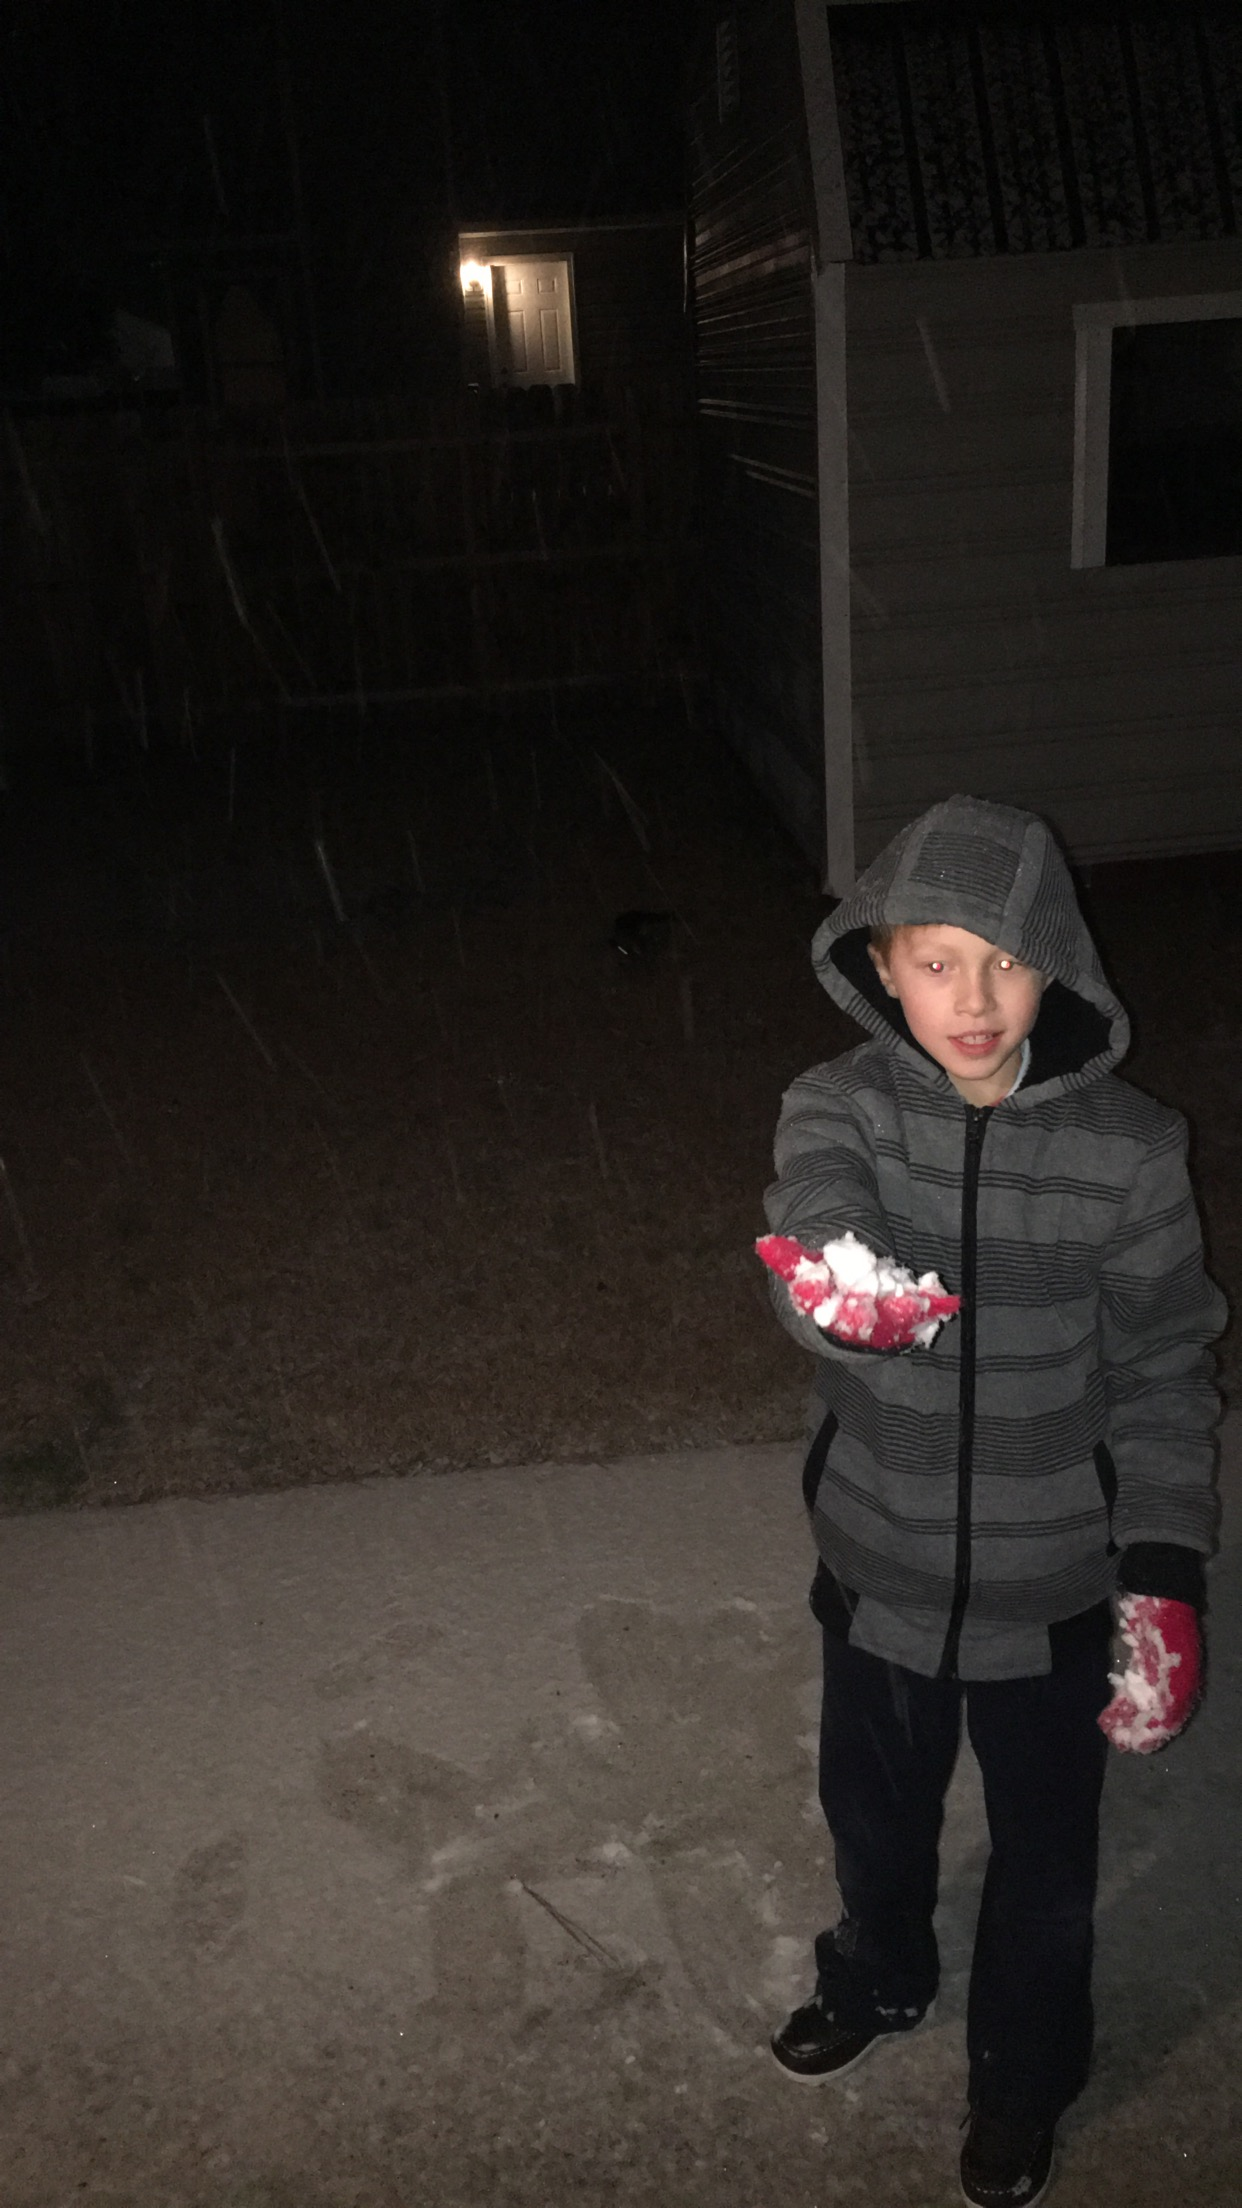 <div class='meta'><div class='origin-logo' data-origin='none'></div><span class='caption-text' data-credit='Virginia Daubert - ABC11 Eyewitness'>Snowing in Fayetteville. My son making the first snow ball!</span></div>